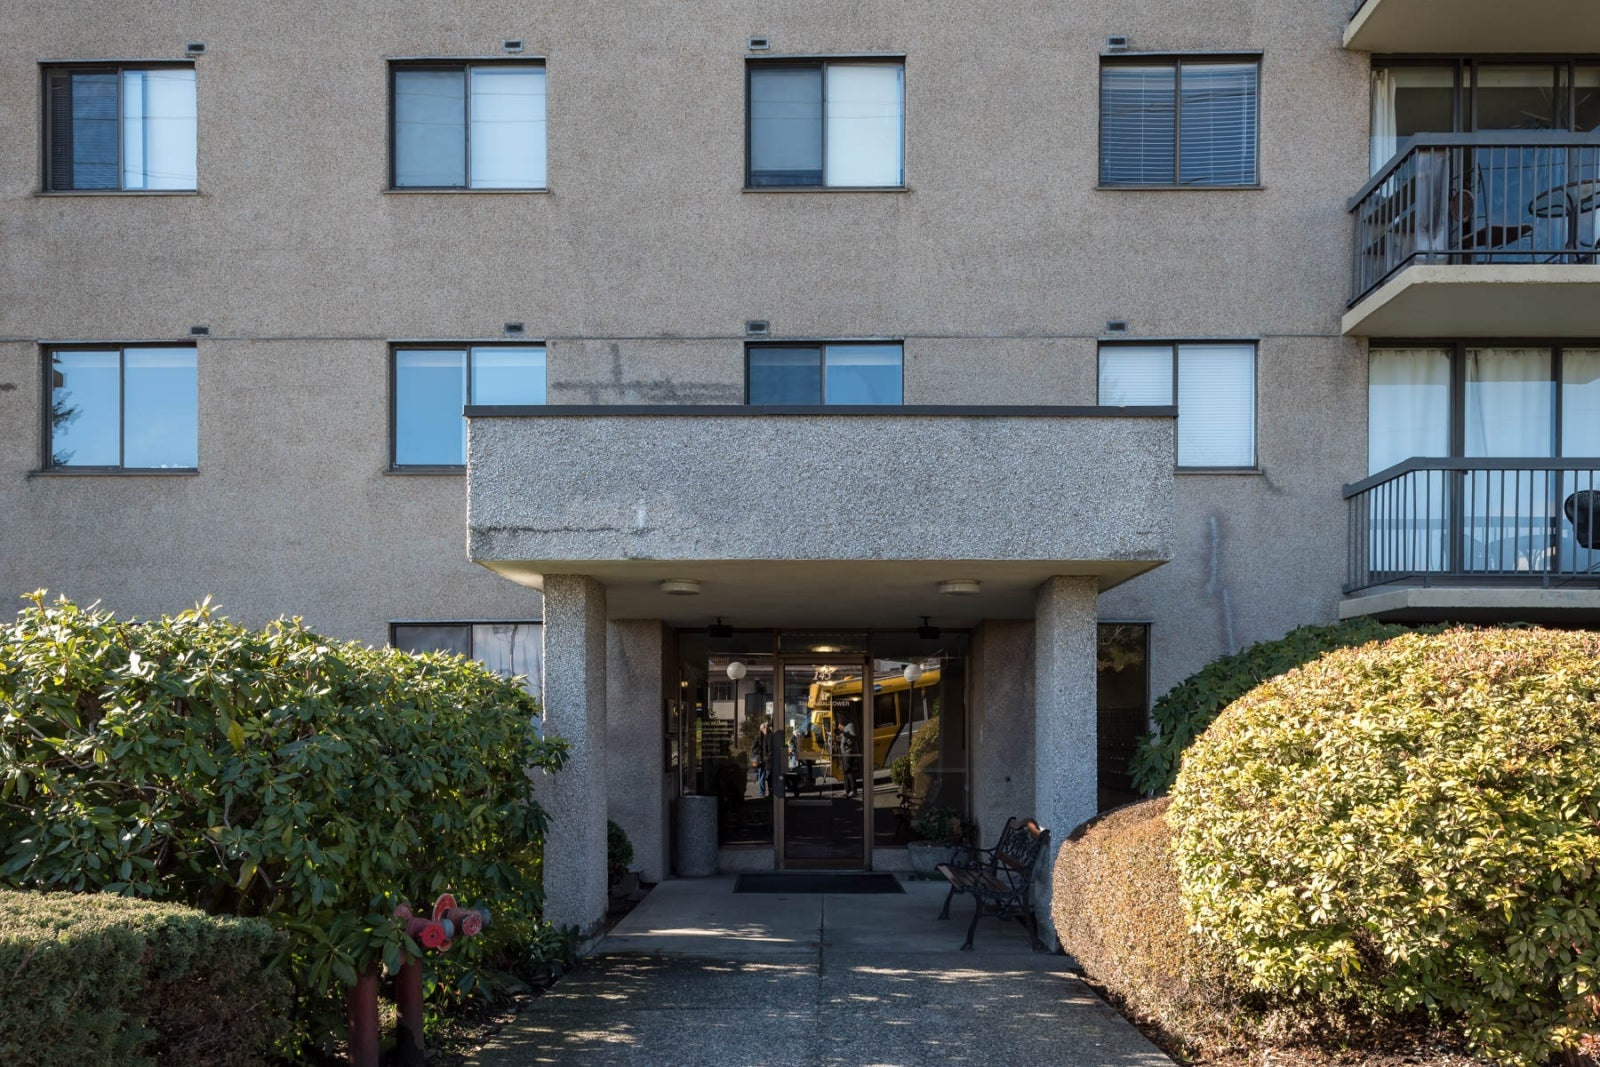 1601 145 ST GEORGES AVENUE - Lower Lonsdale Apartment/Condo for sale, 1 Bedroom (R2244405) #28